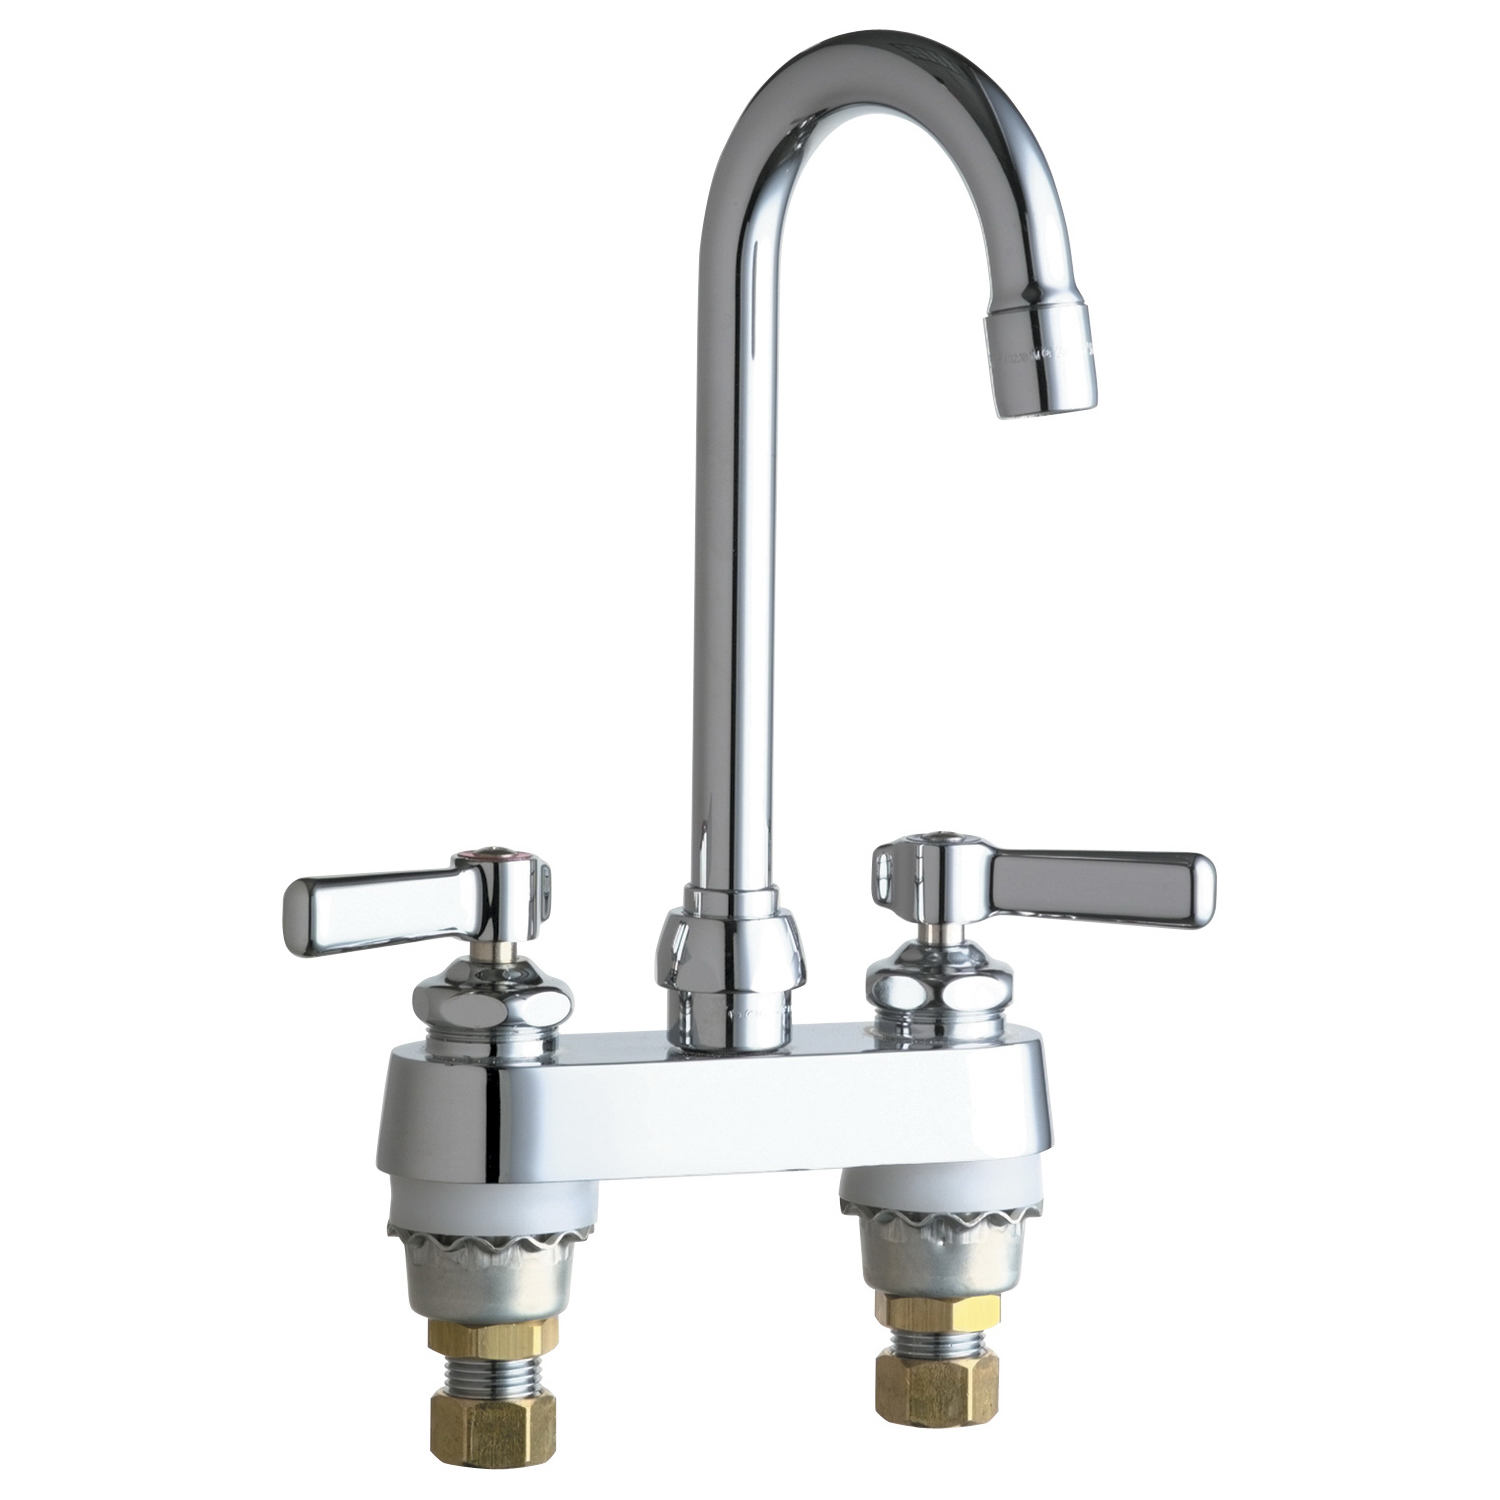 Chicago Faucet® 895-XKABCP Lavatory Sink Faucet, Chrome Plated, 2 Handles, 2.2 gpm